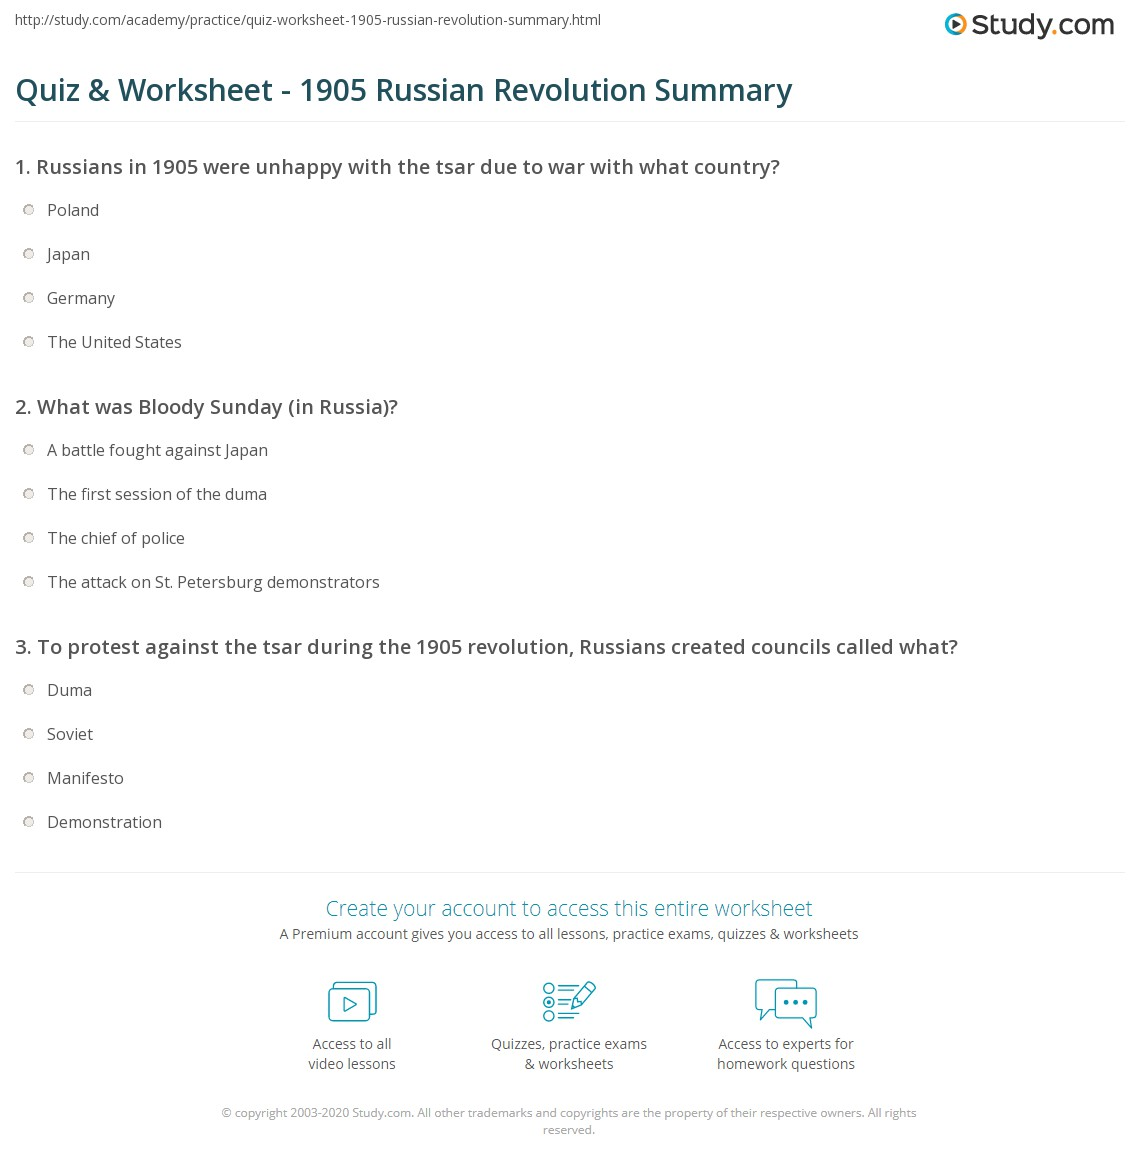 russian revolution essay russian revolution essay russian  quiz worksheet russian revolution summary com print 1905 russian revolution causes consequences worksheet